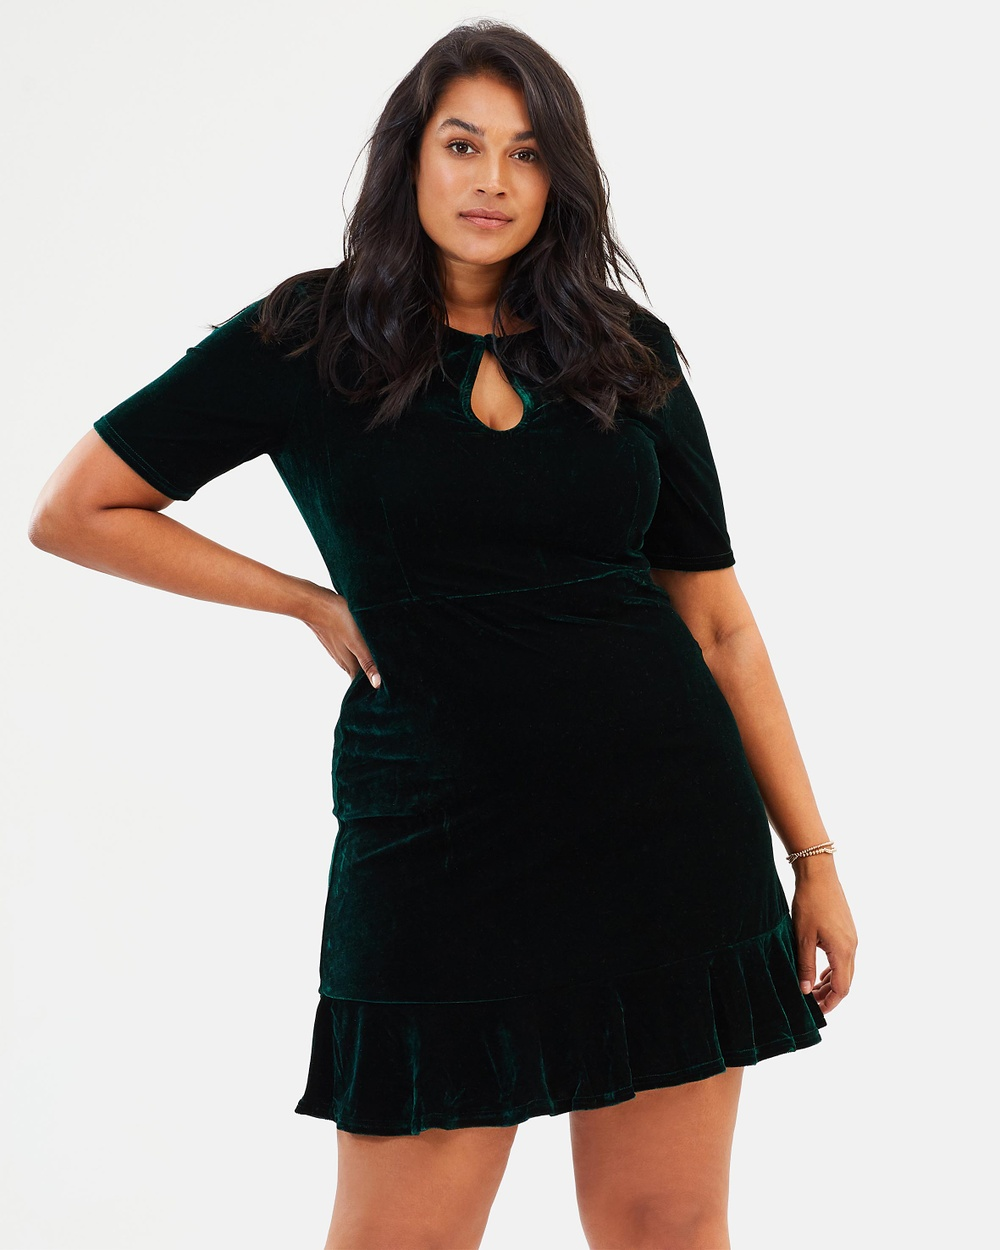 Atmos & Here Curvy ICONIC EXCLUSIVE Linda Velvet Dress Dresses Green Velvet ICONIC EXCLUSIVE Linda Velvet Dress